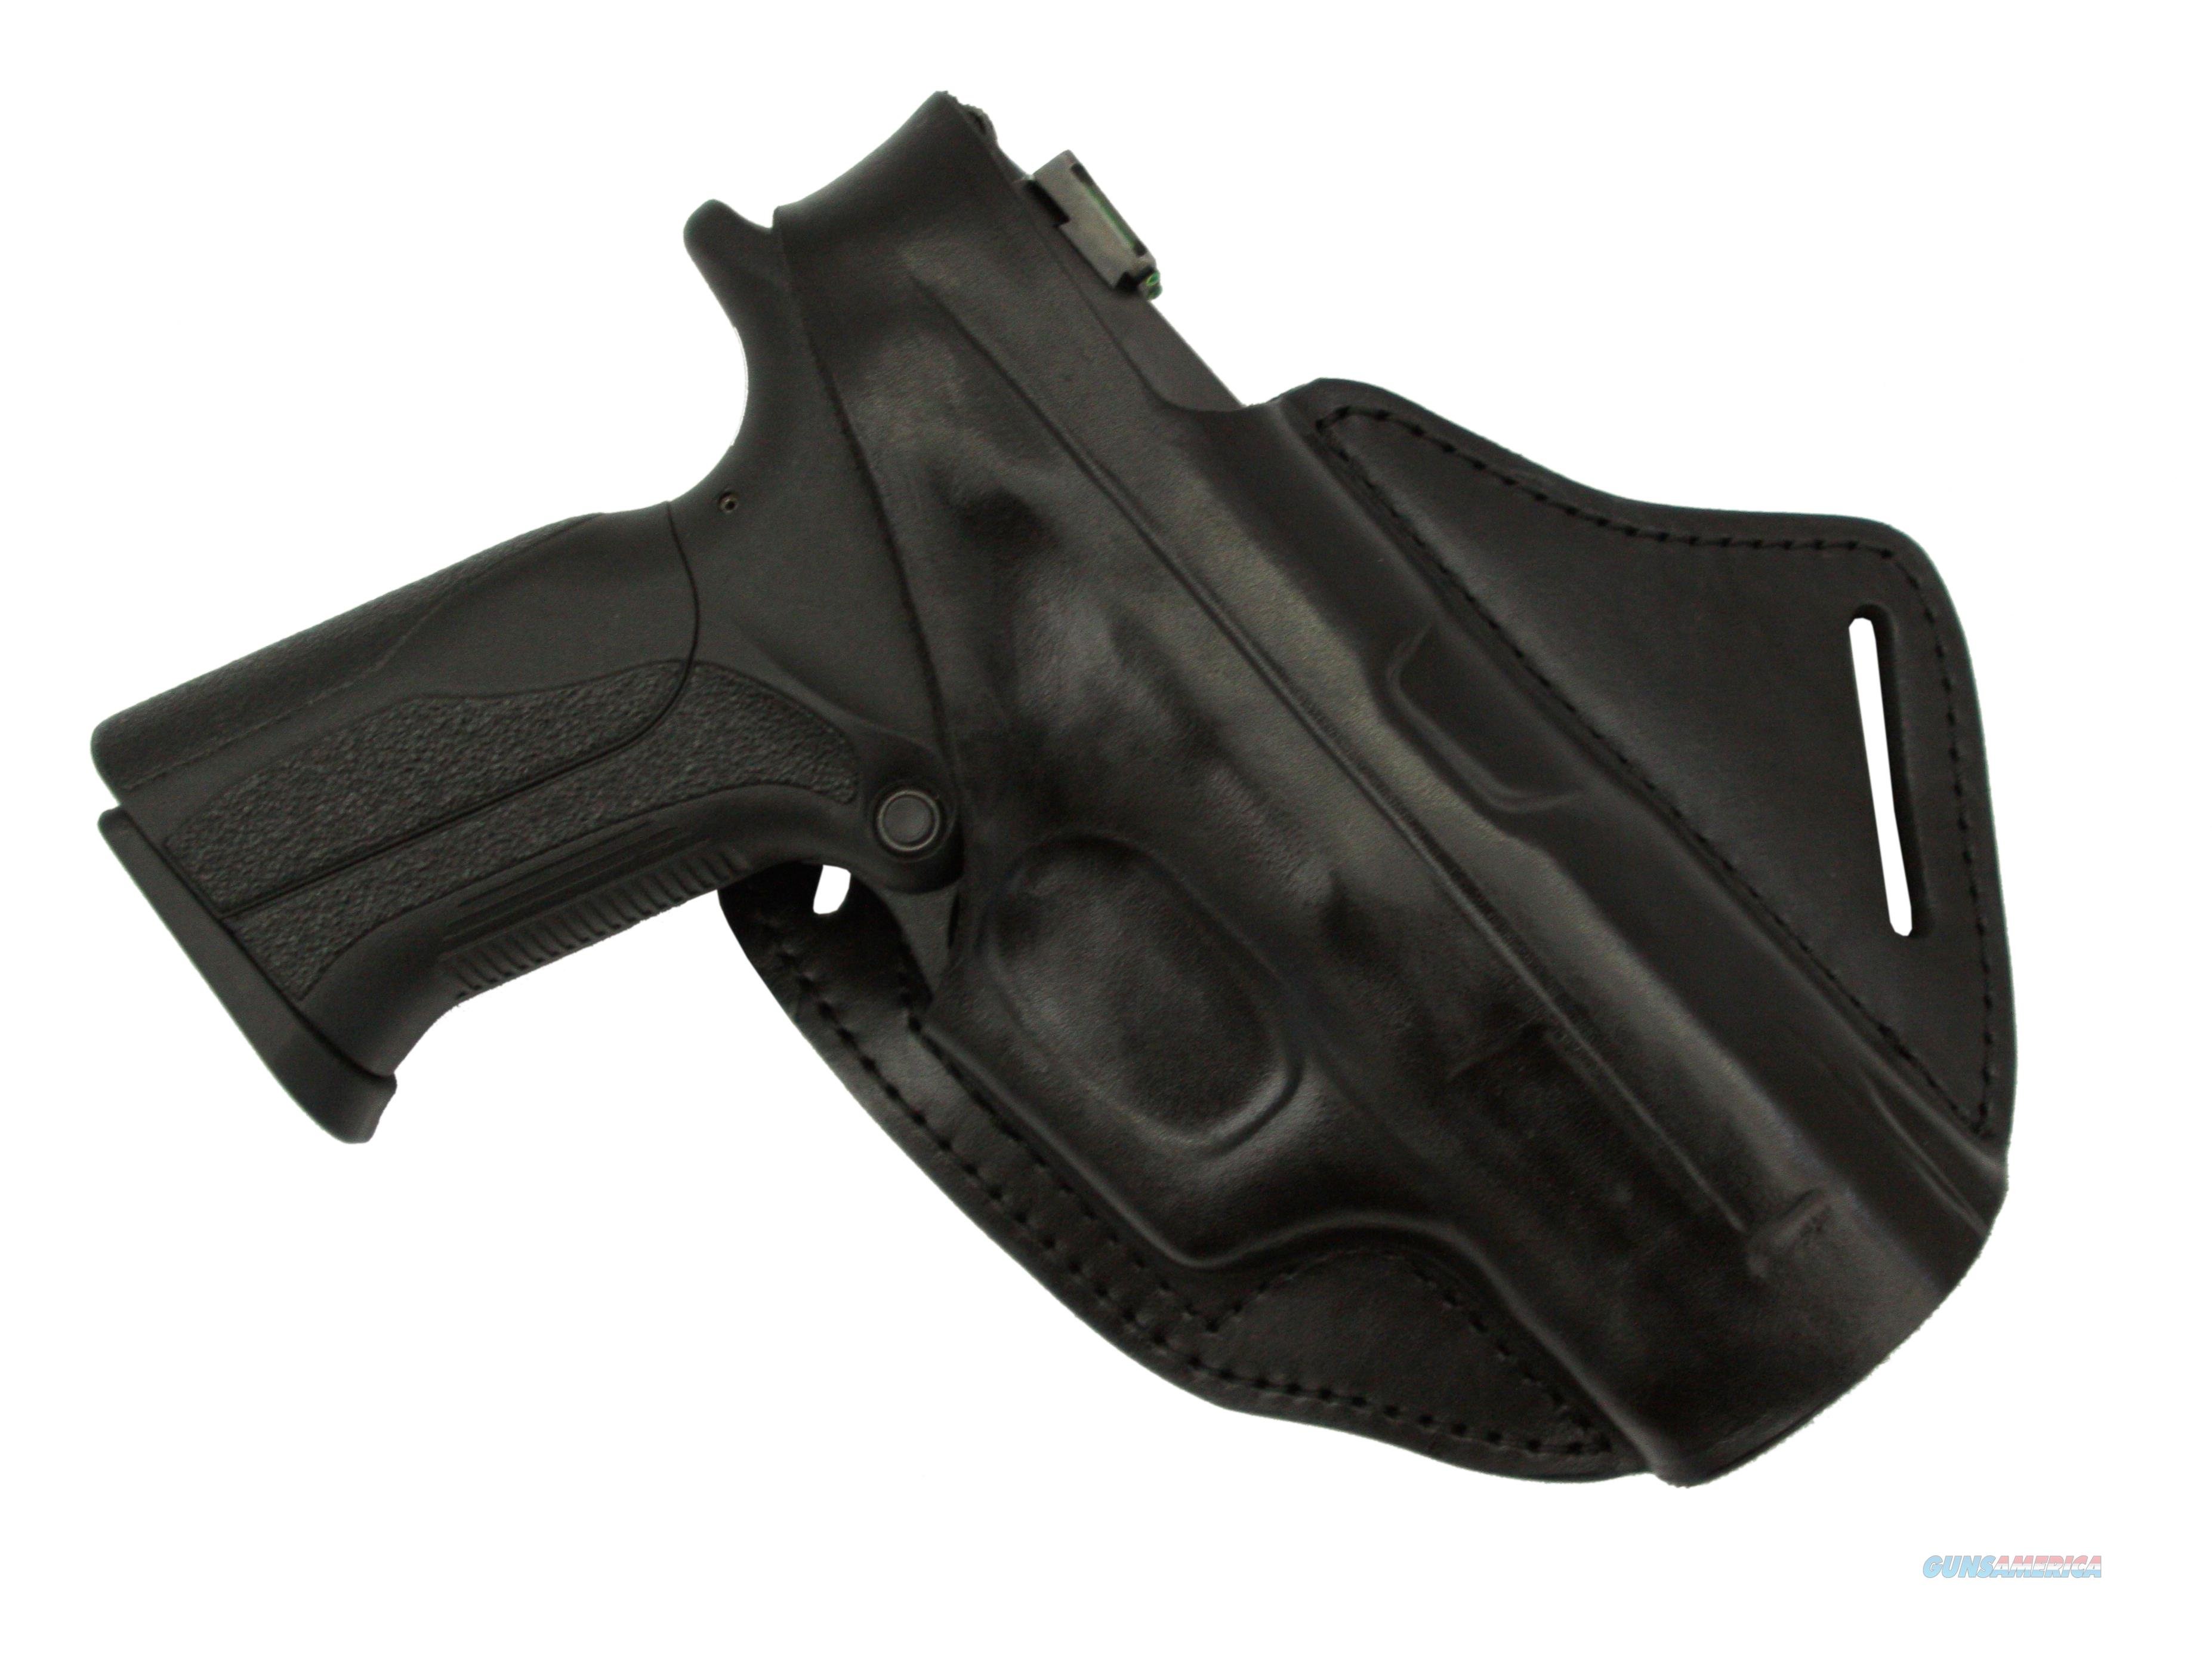 Cross Draw leather belt holster Springfield XD Subcompact  Non-Guns > Holsters and Gunleather > Concealed Carry